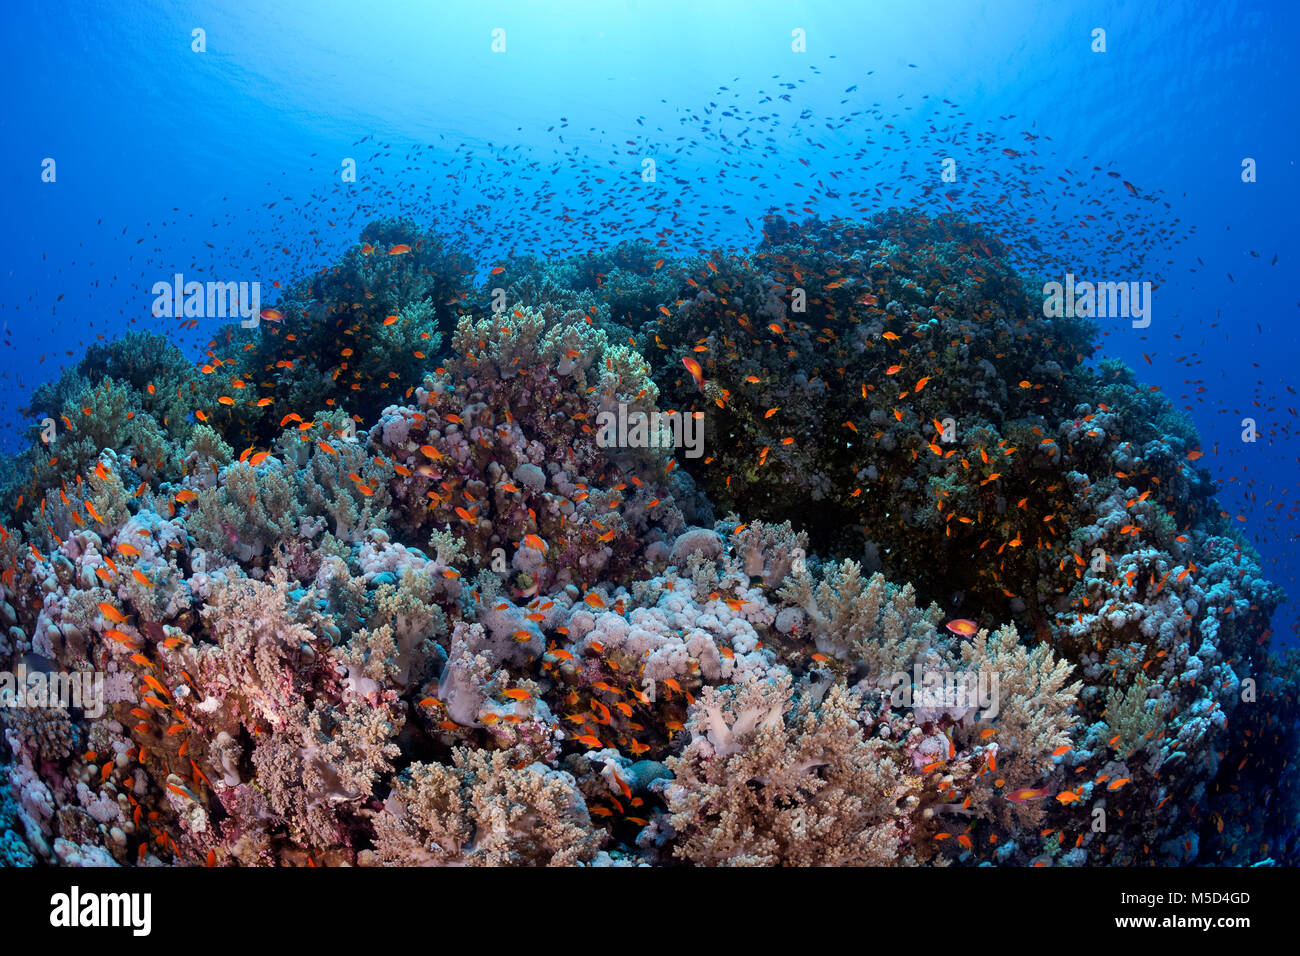 Typical coral reef, densely overgrown with various corals, with shoal Anthias (Anthiinae), Red Sea, Egypt - Stock Image